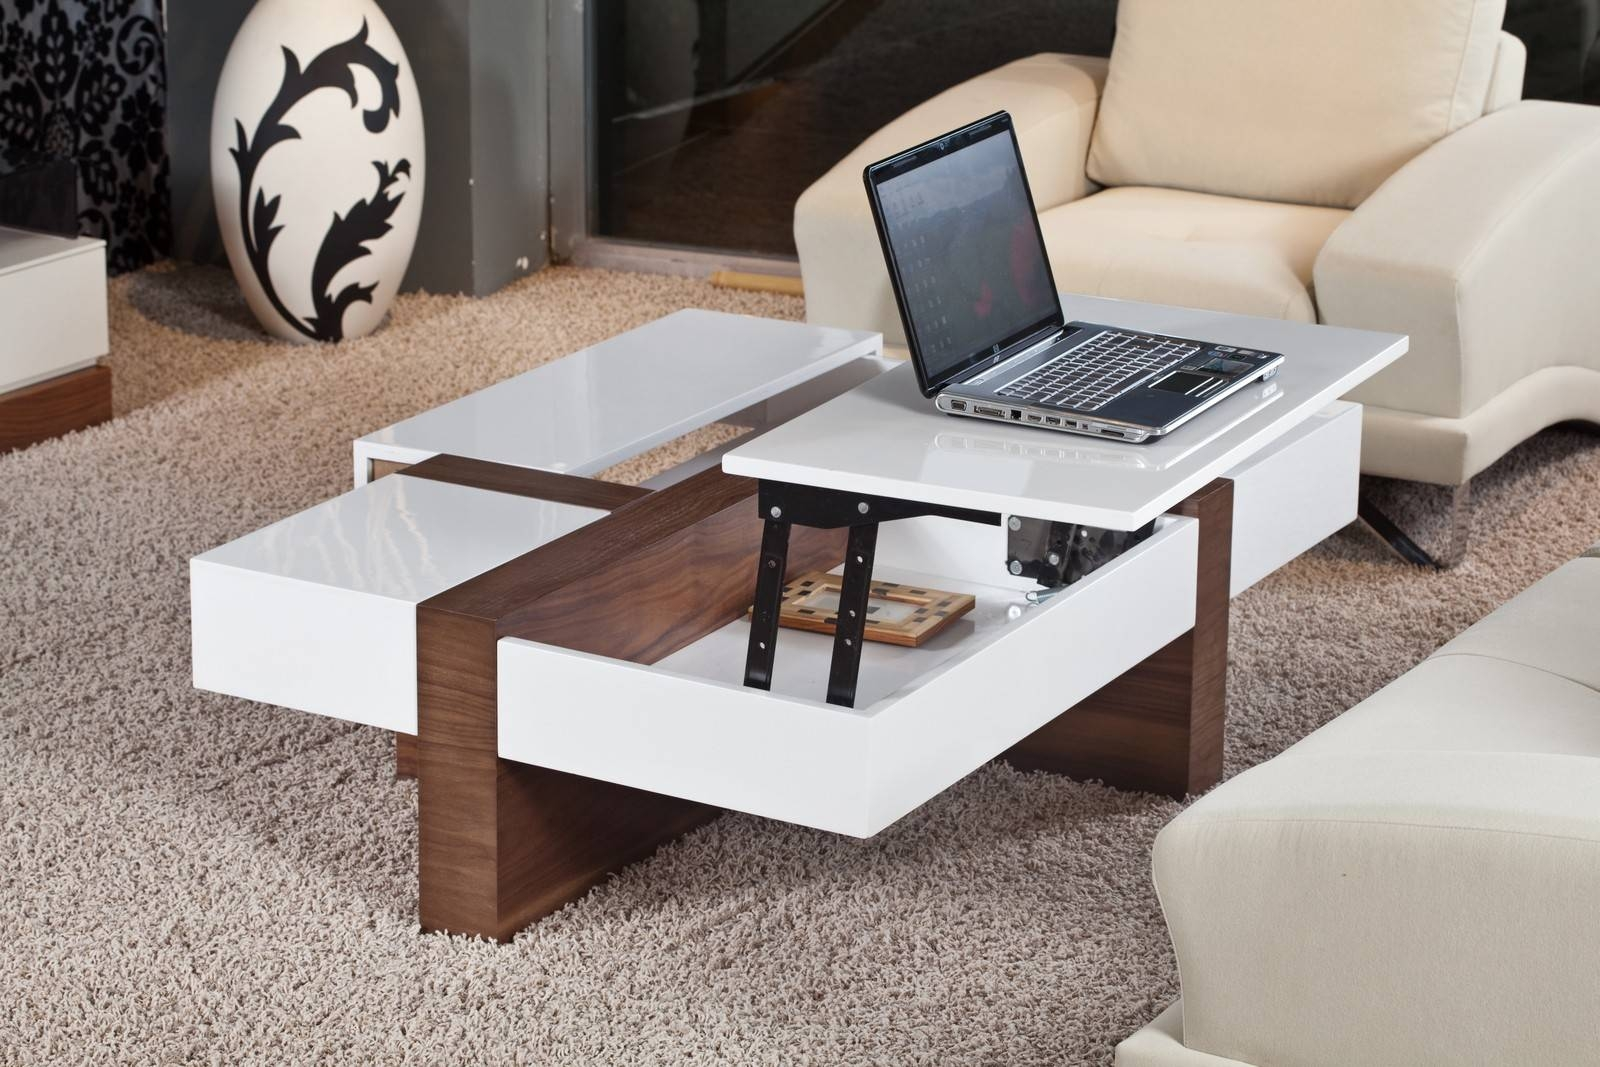 Coffee Table: Breathtaking Square Coffee Table With Storage Design intended for Square Coffee Table Storages (Image 10 of 30)